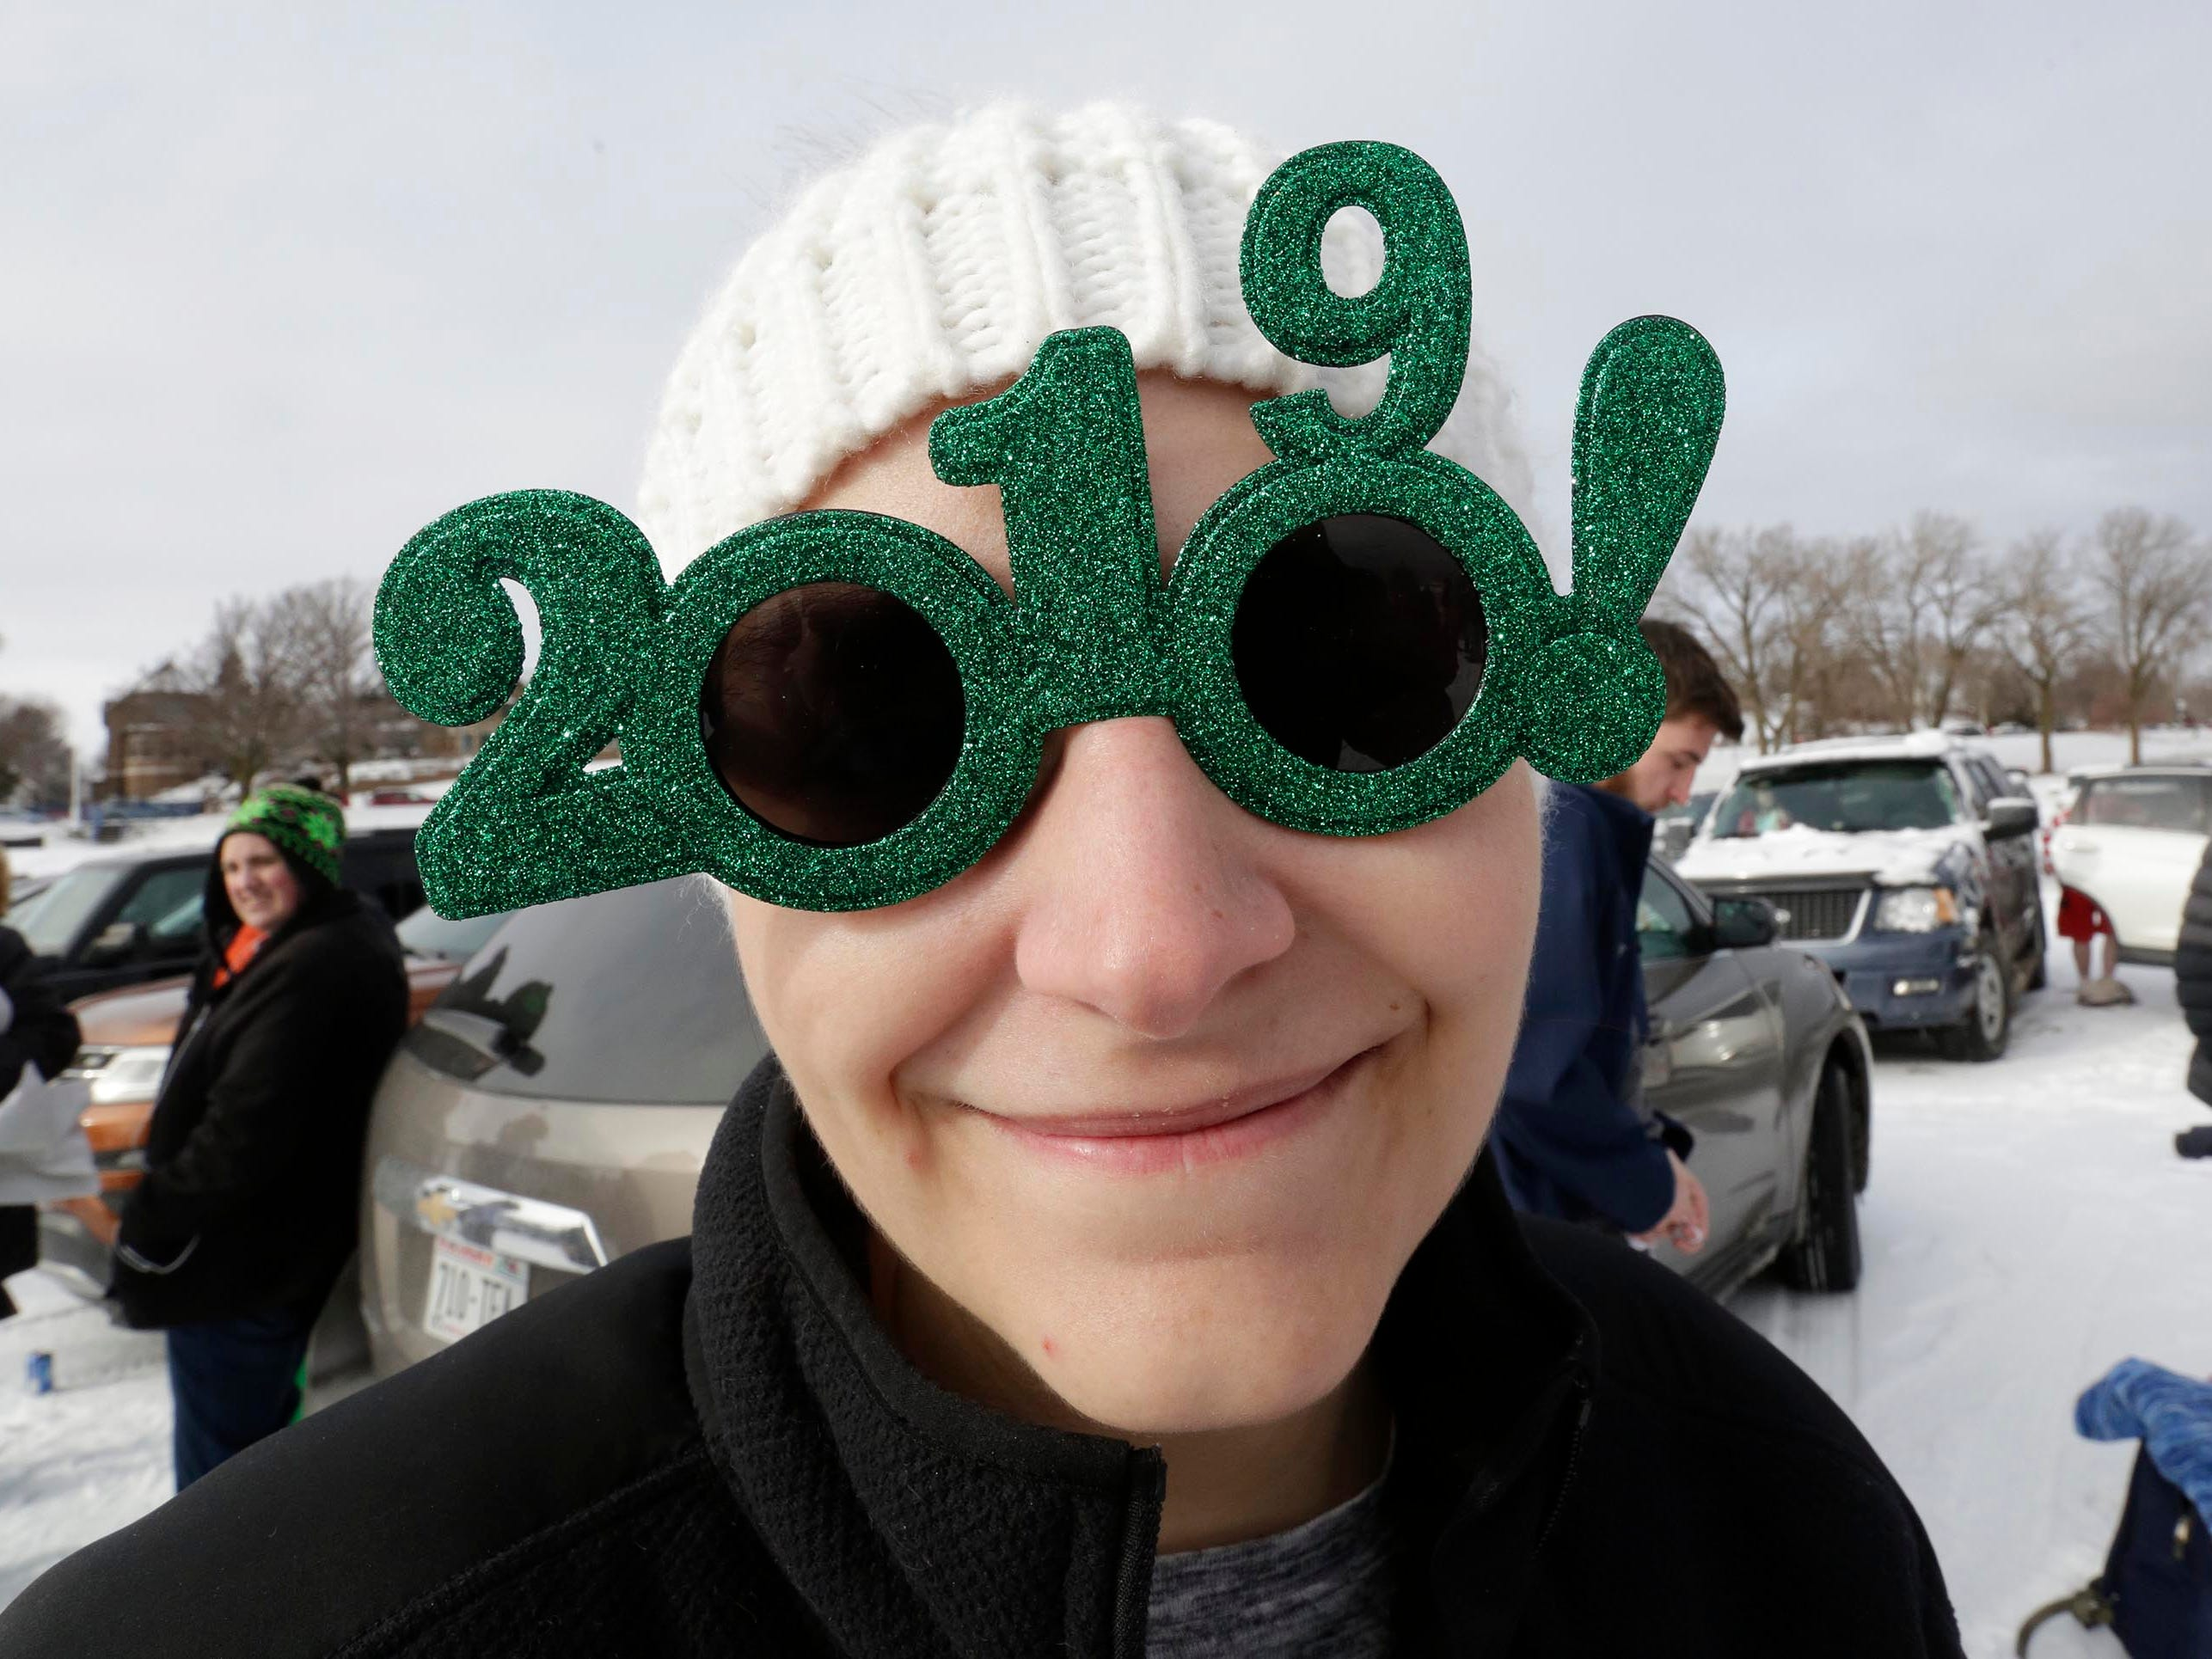 Andrea Barrera of Sheboygan, sports a pair of 2019 party sunglasses at the Polar Bear Plunge, Tuesday, January 1, 2019, at Deland Park in Sheboygan, Wis.